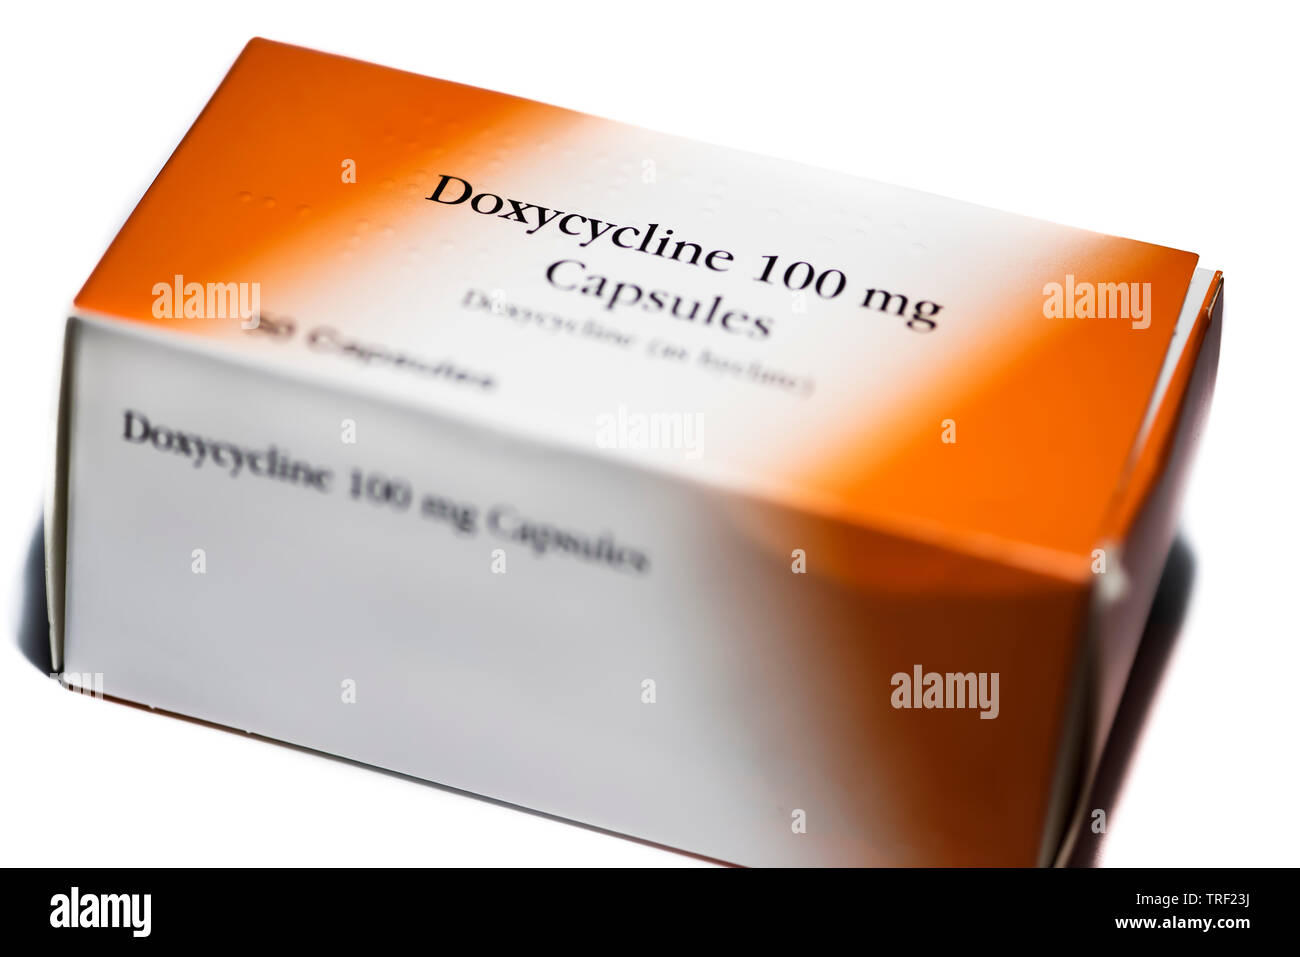 Box of Doxycycline capsules antimalarial prophelactic treatment to prevent malaria infection - Stock Image